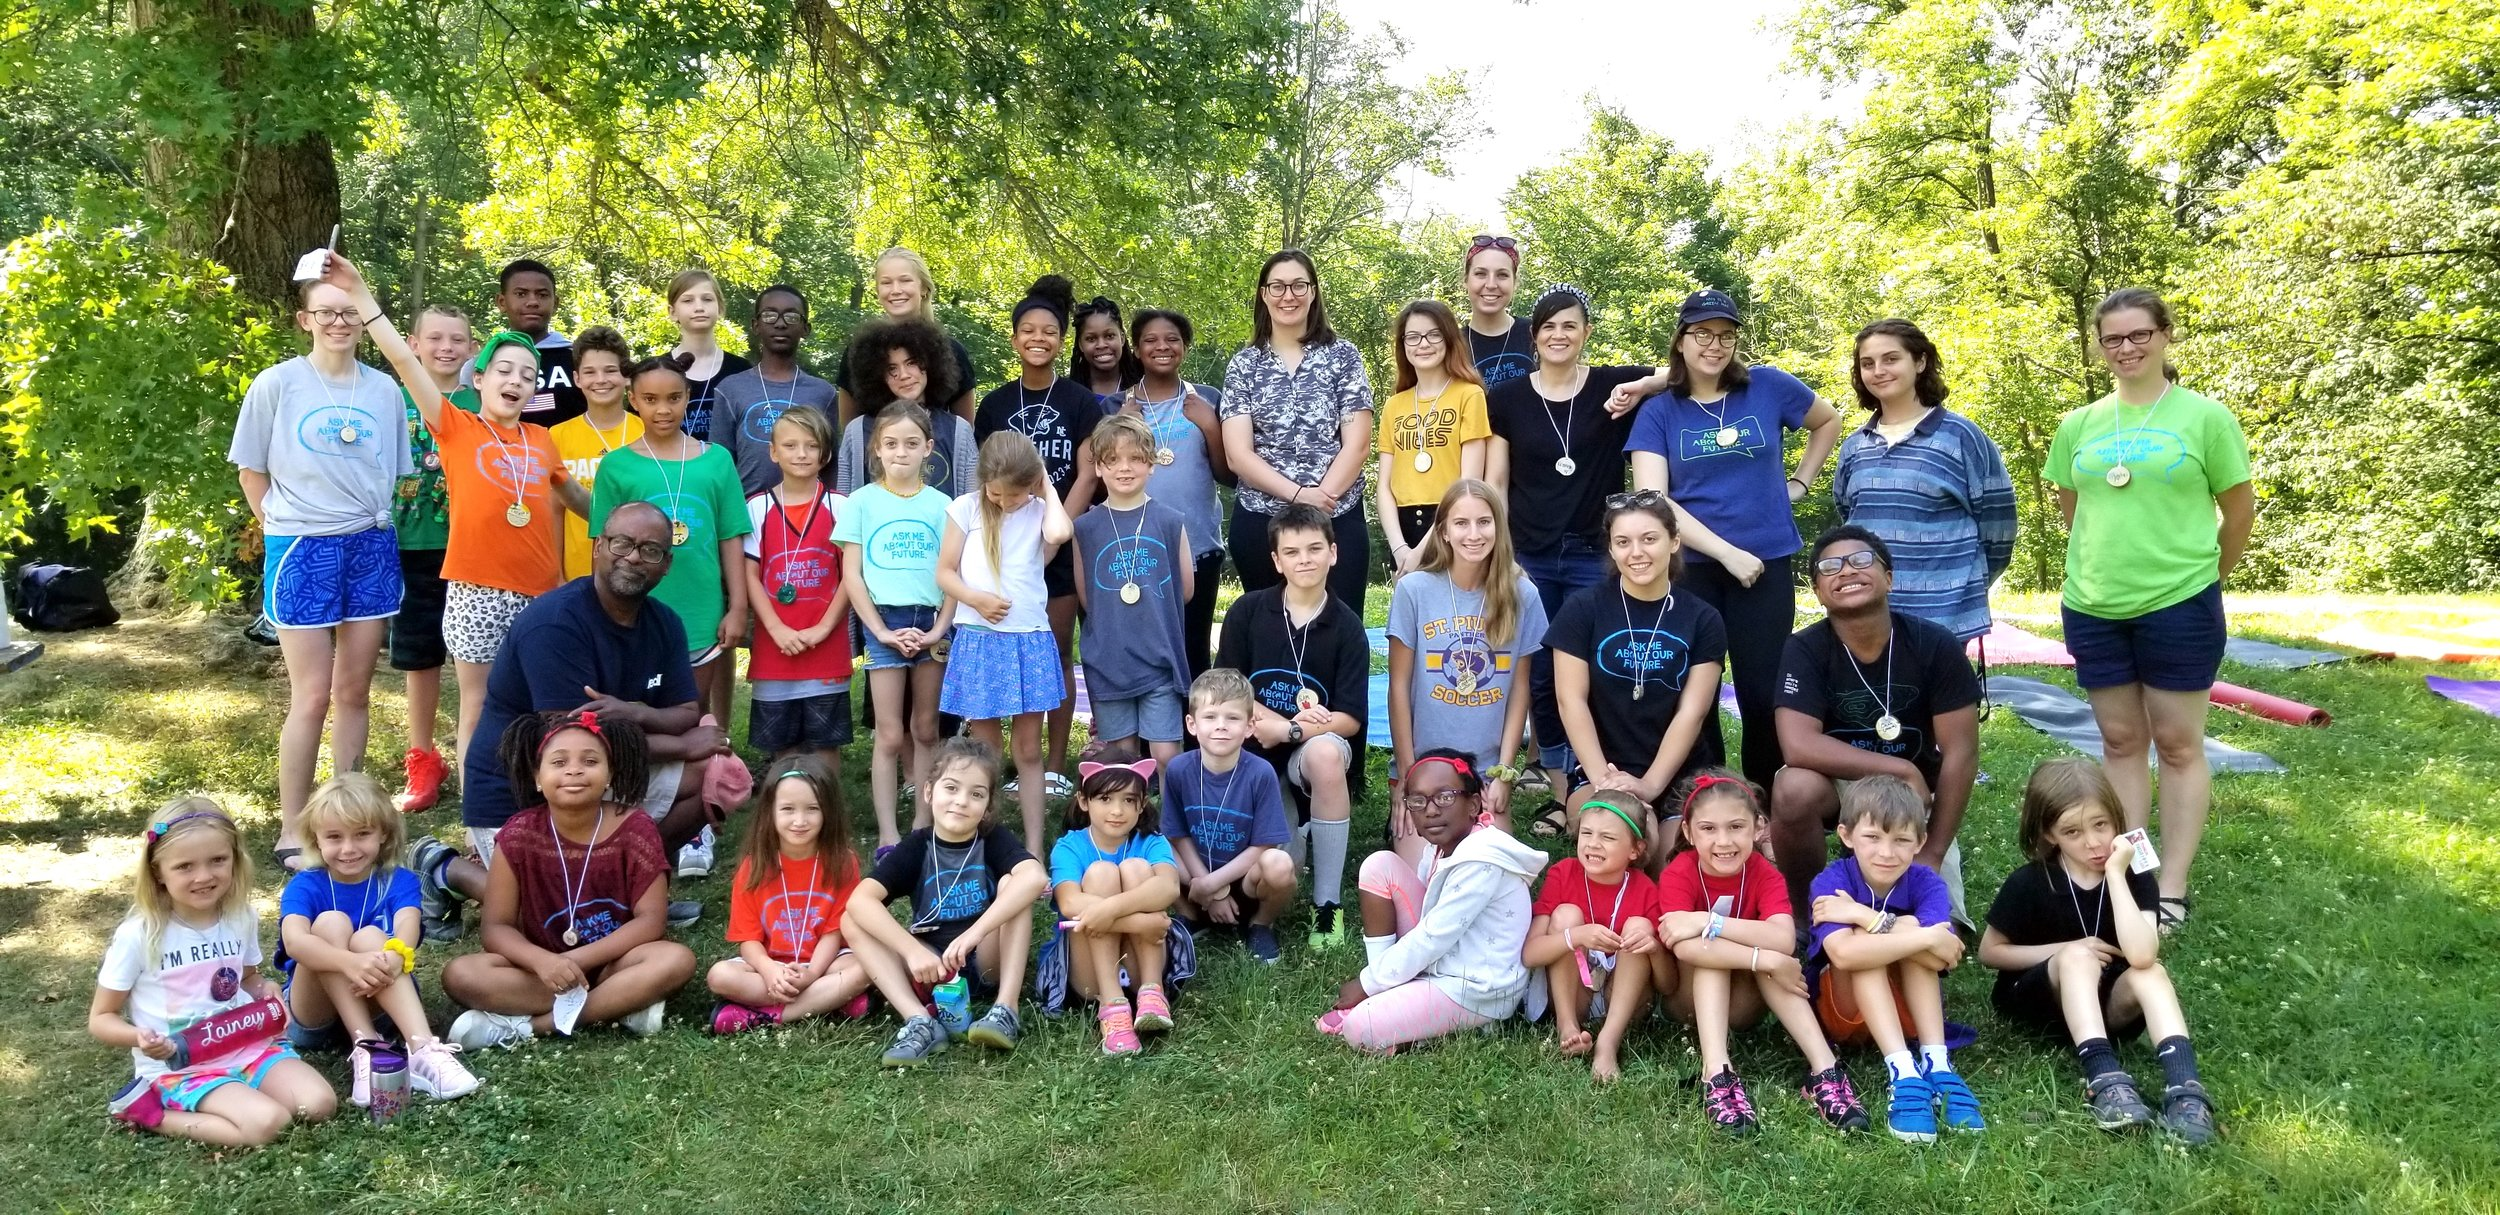 Climate Camp invites experts in to speak to our campers about pertinent issues. In the back row, just right of center (the woman in the glasses), is Emily Hopkins, reporter for the Indianapolis Star, whose story on the Indianapolis 500 balloon release, captured our attention. She came to camp to describe her story and share her thoughts. Some of our campers are considering a career in journalism, so that was an added plus!